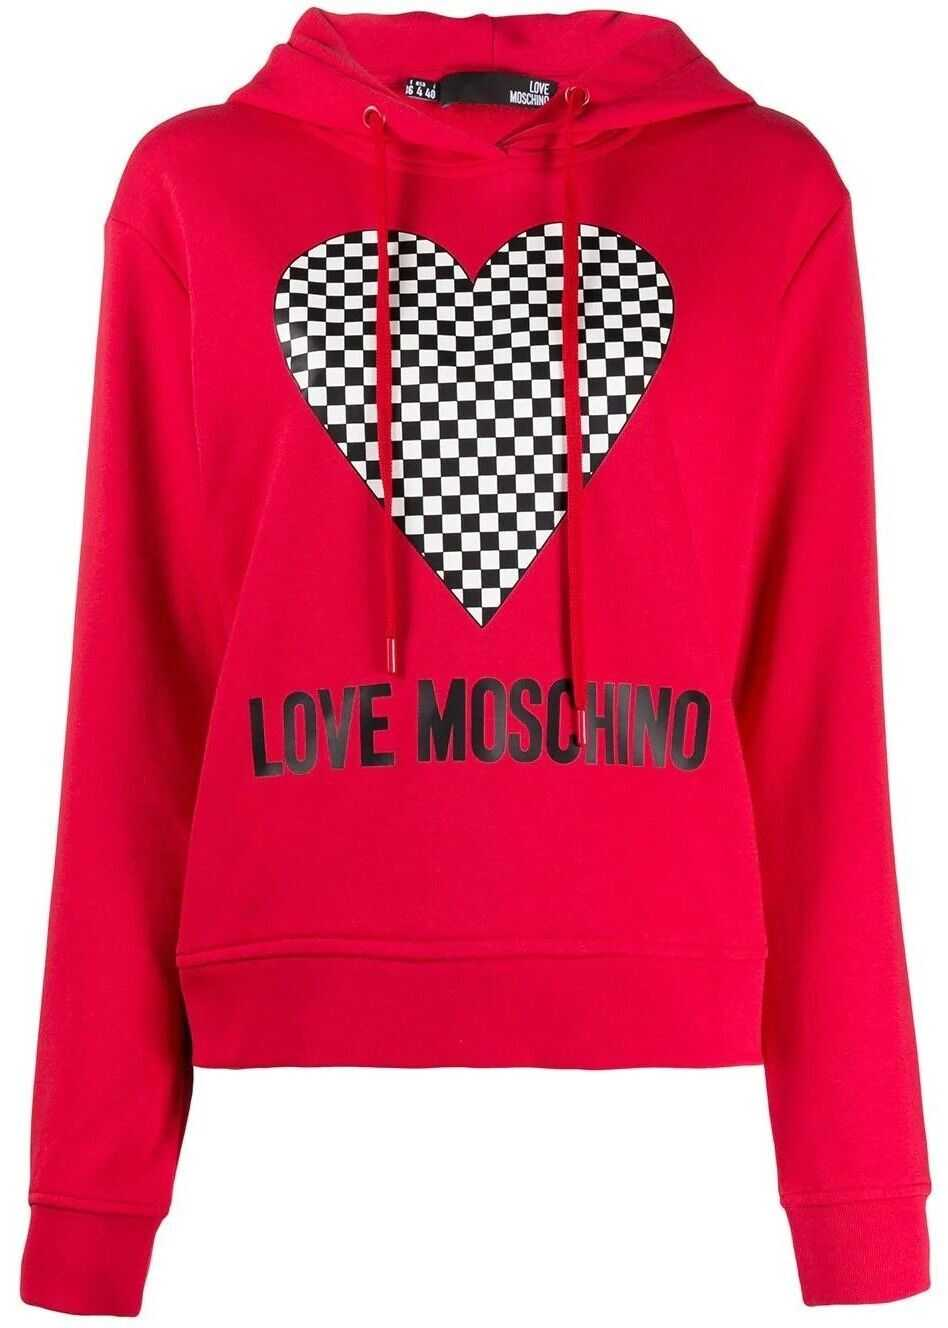 LOVE Moschino Cotton Sweatshirt RED